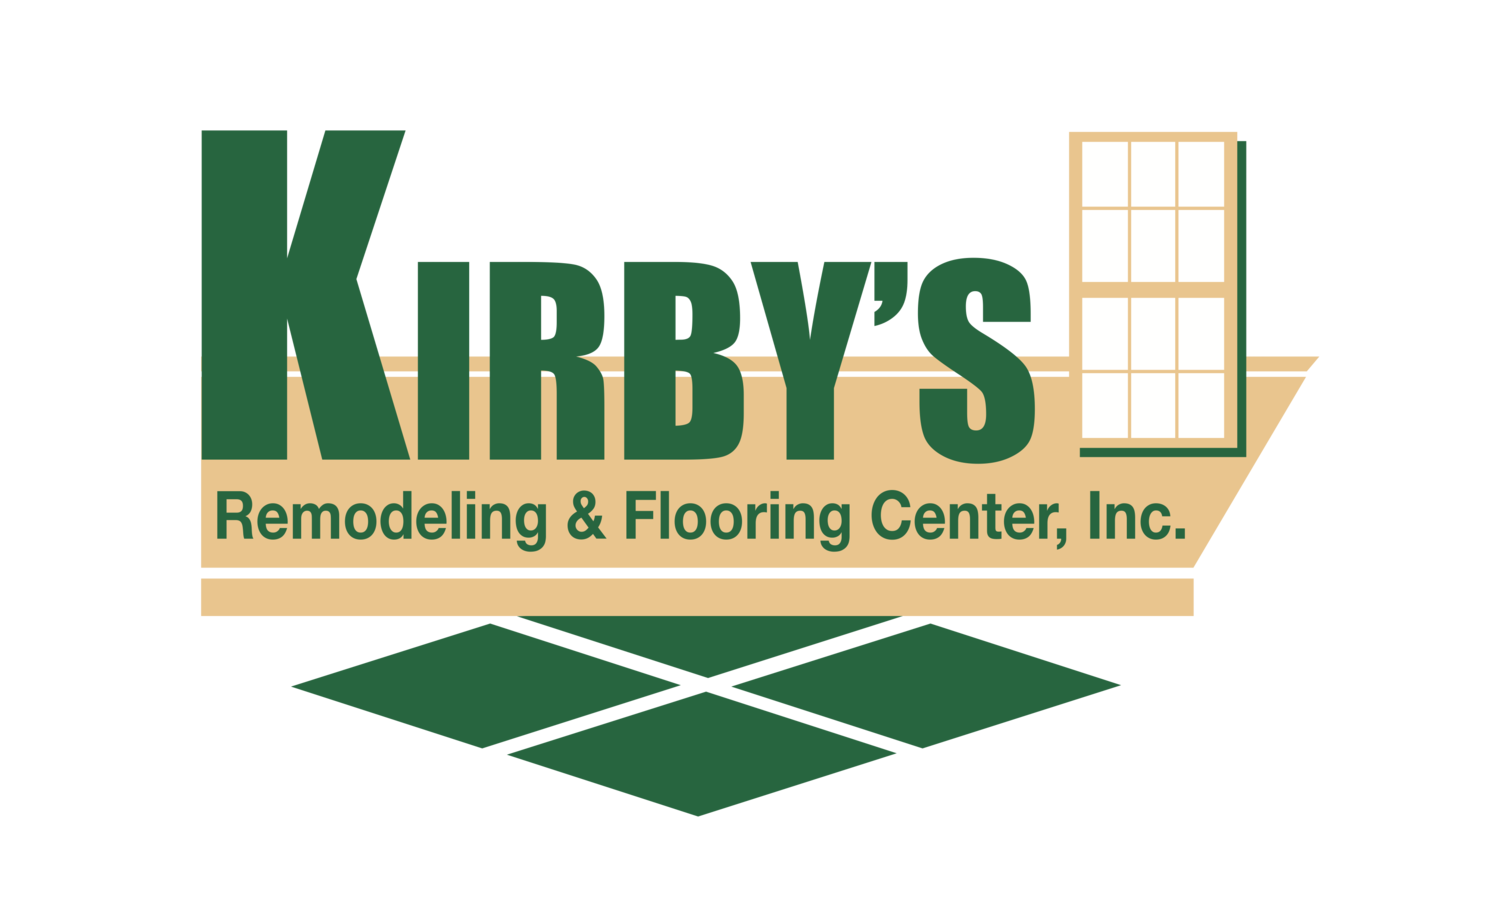 Kirby's Remodeling and Flooring Center, Inc.